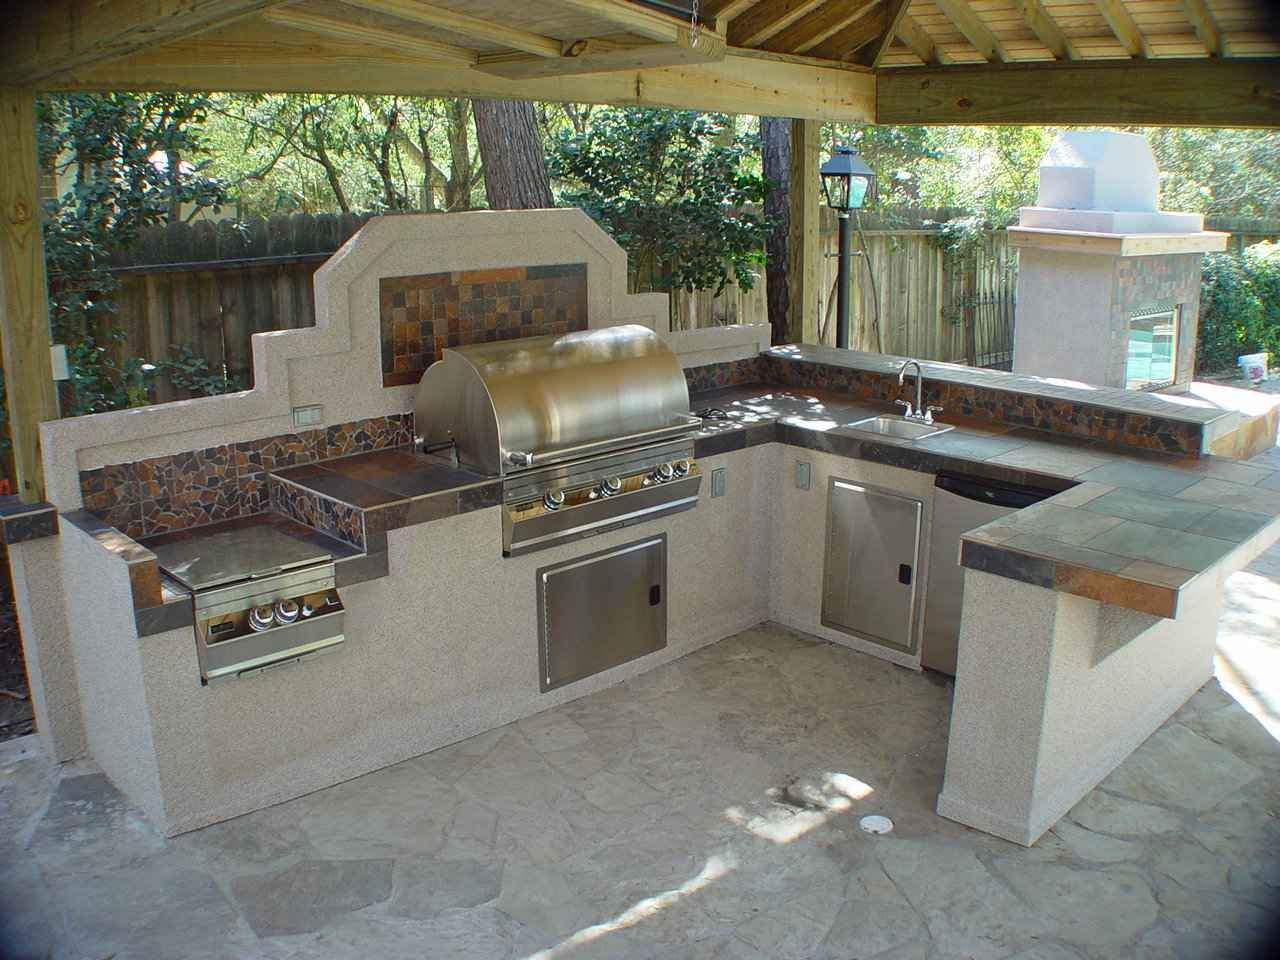 Fancy Modular Outdoor Kitchen Designs Outdoors And Kitchens - Kitchens designers